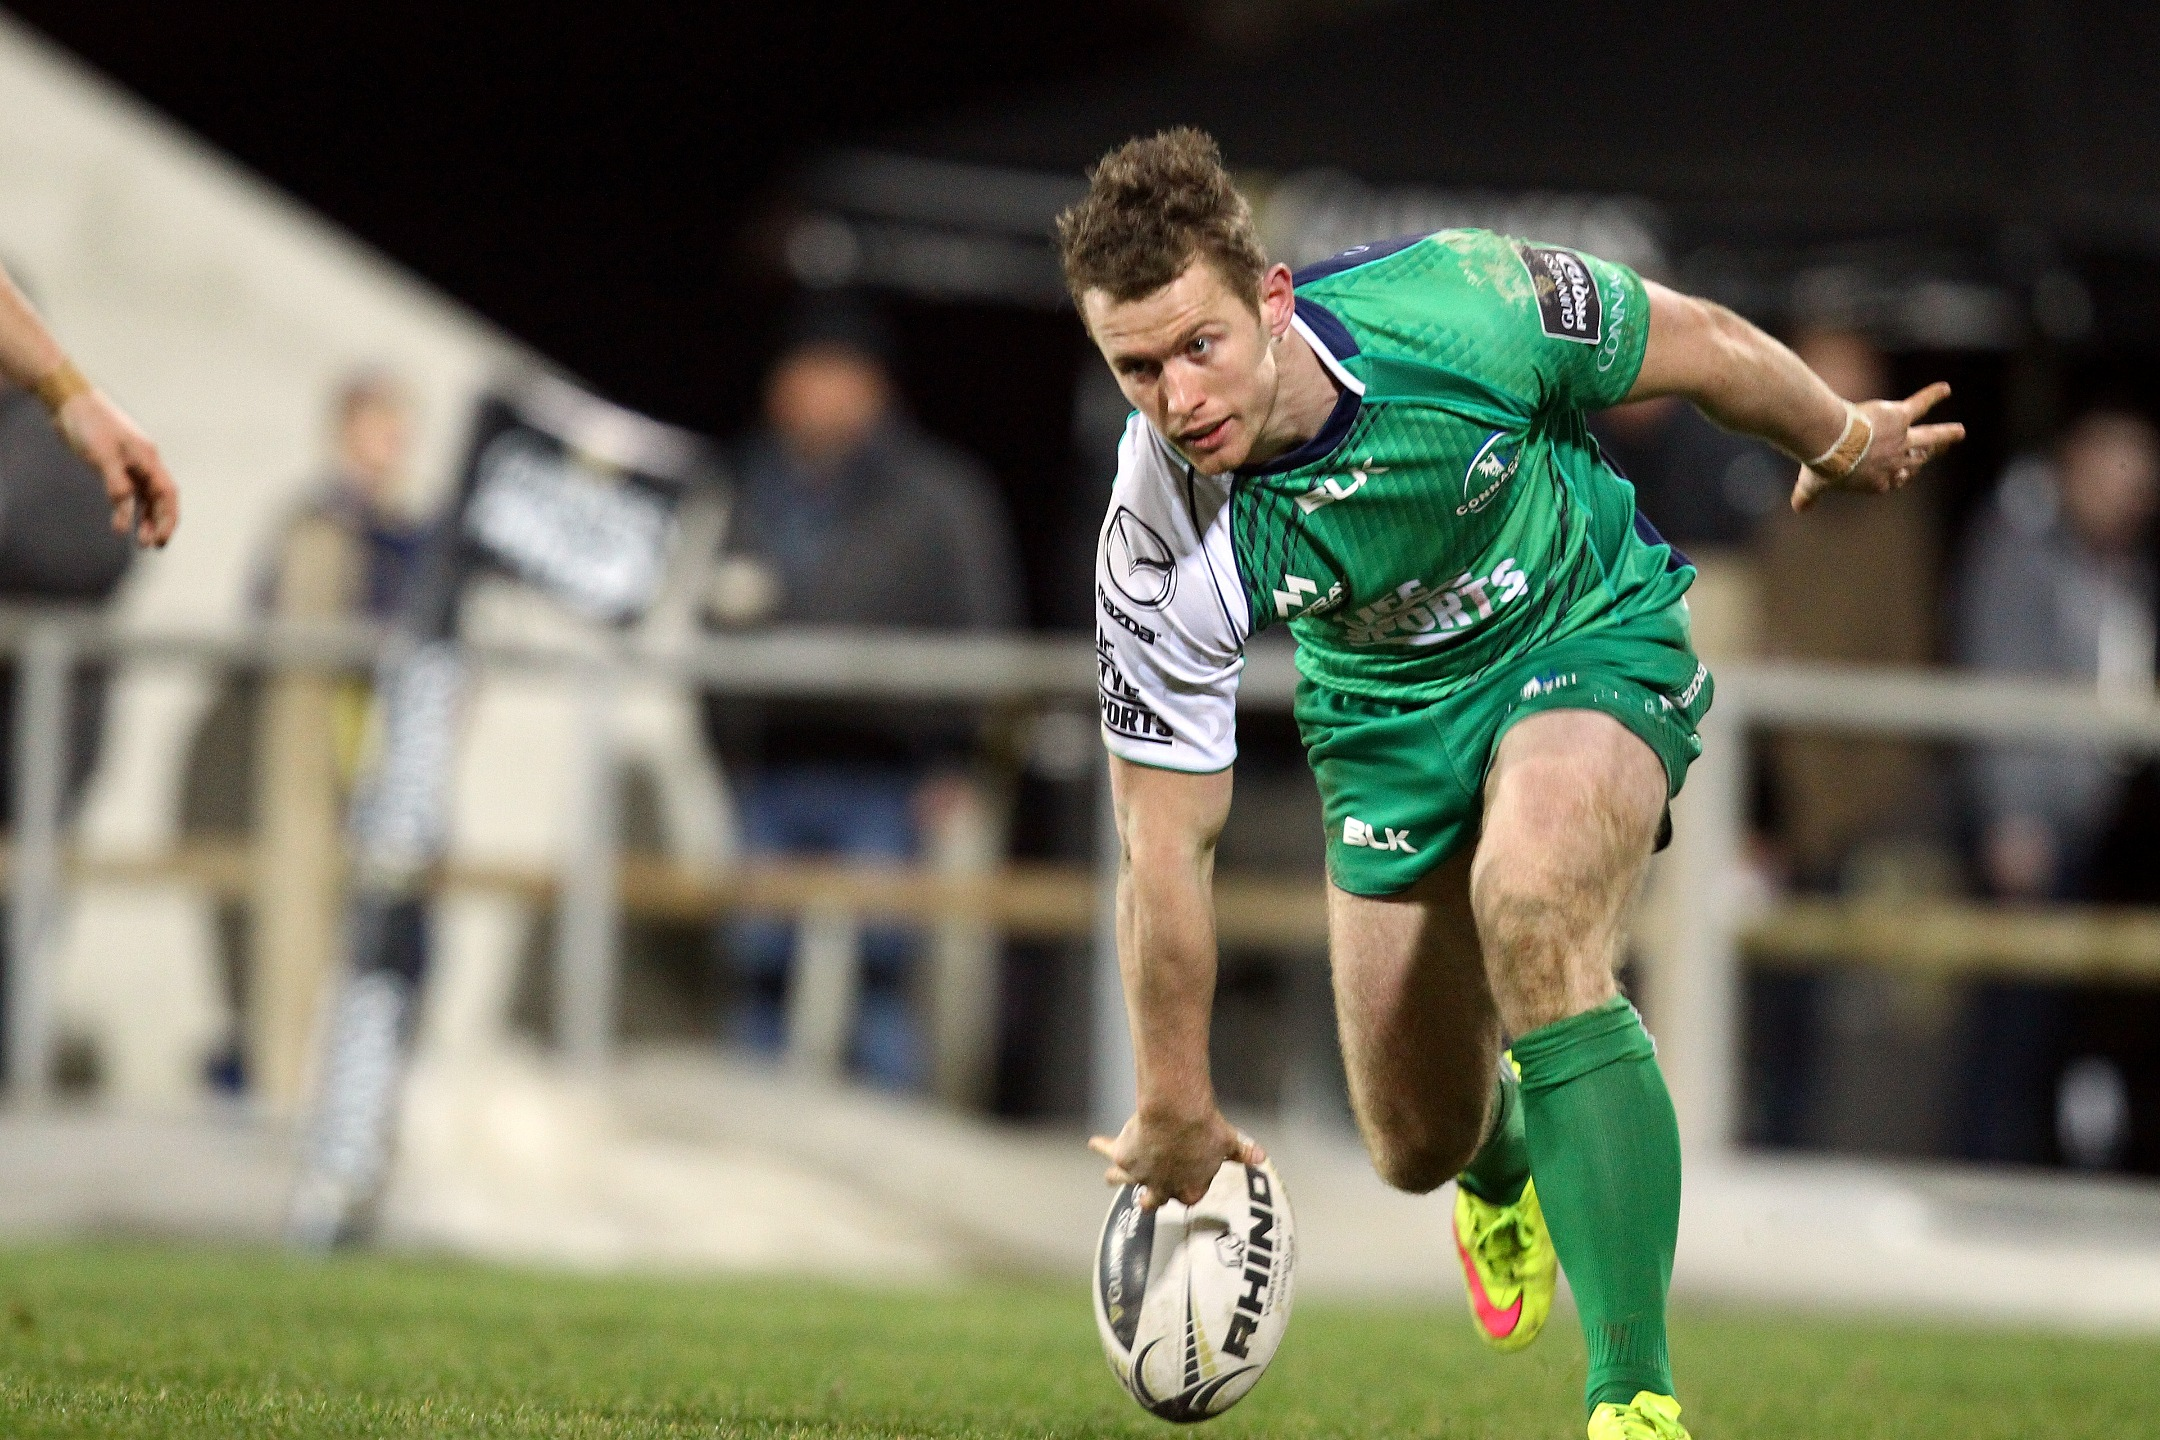 Ten things to watch out for in this weekend's GUINNESS PRO12 action